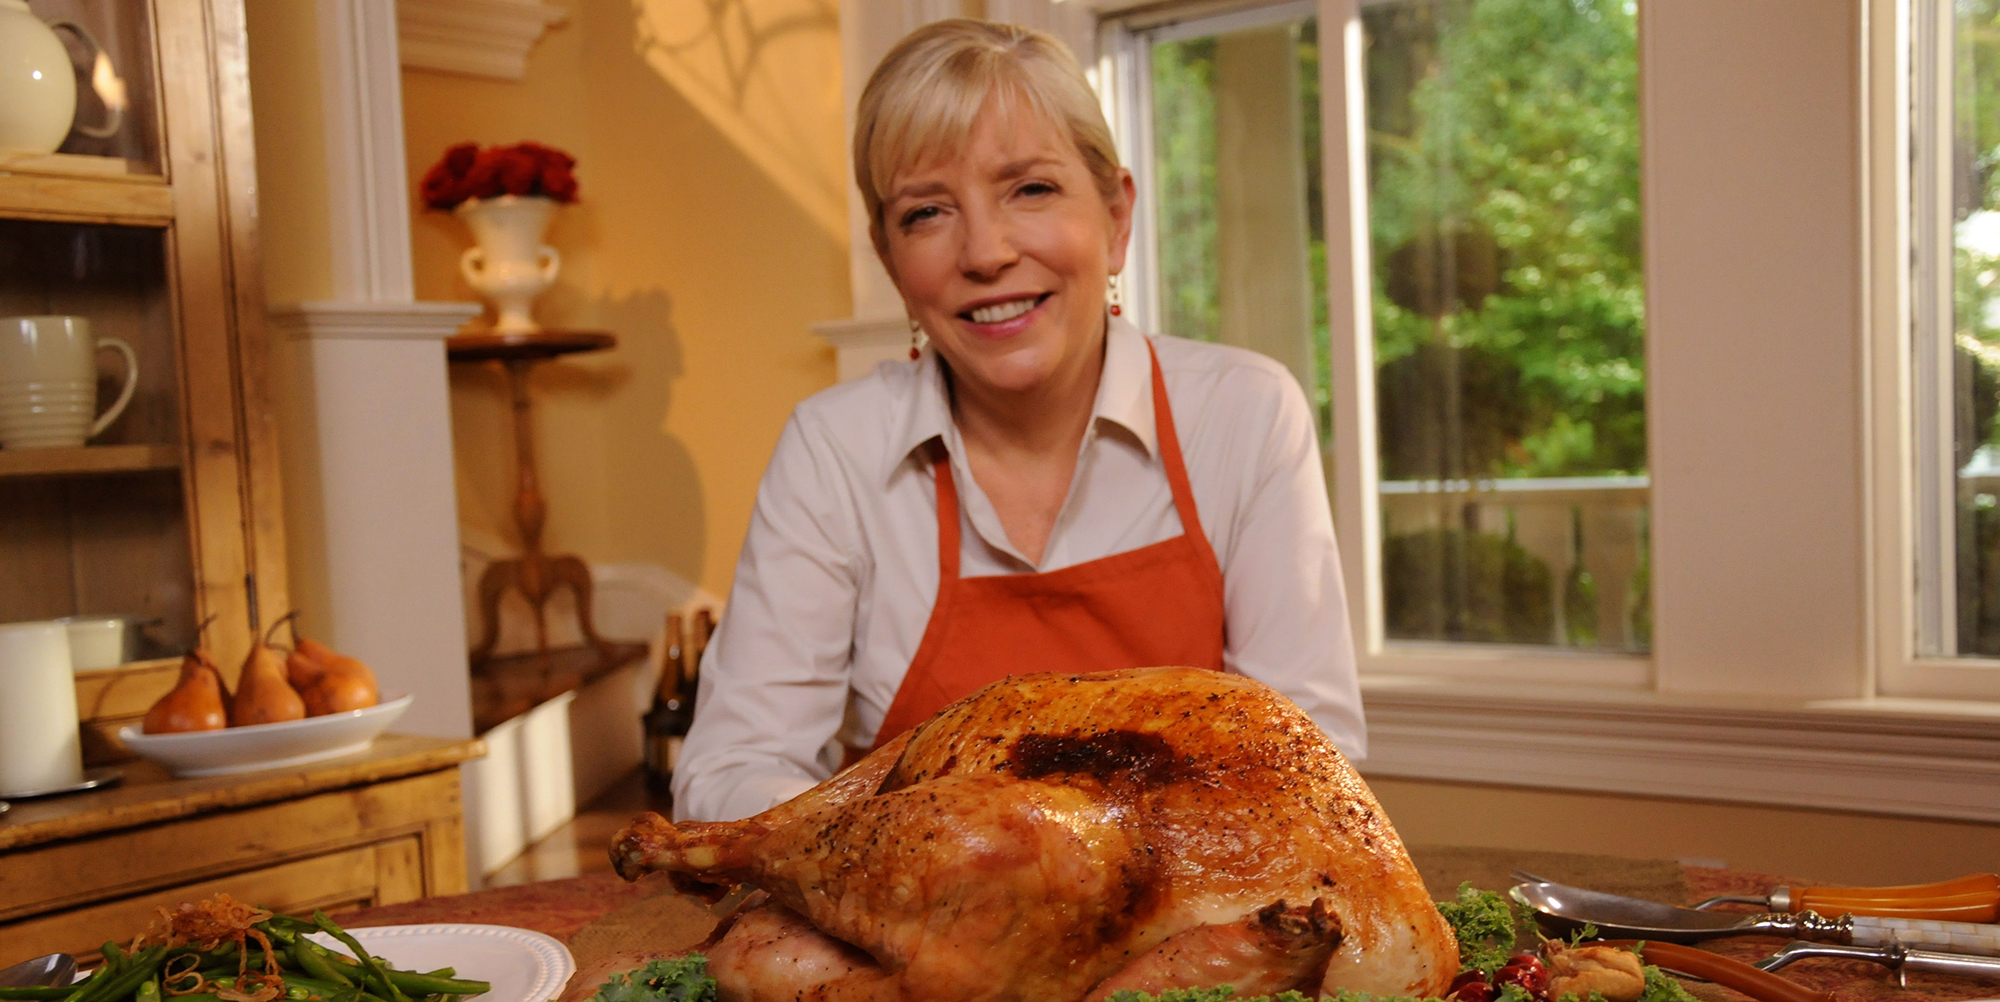 Chef, cookbook author and television personality Sara Moulton offers time-saving tips and techniques in her one-hour special Surviving Thanksgiving With Sara Moulton.